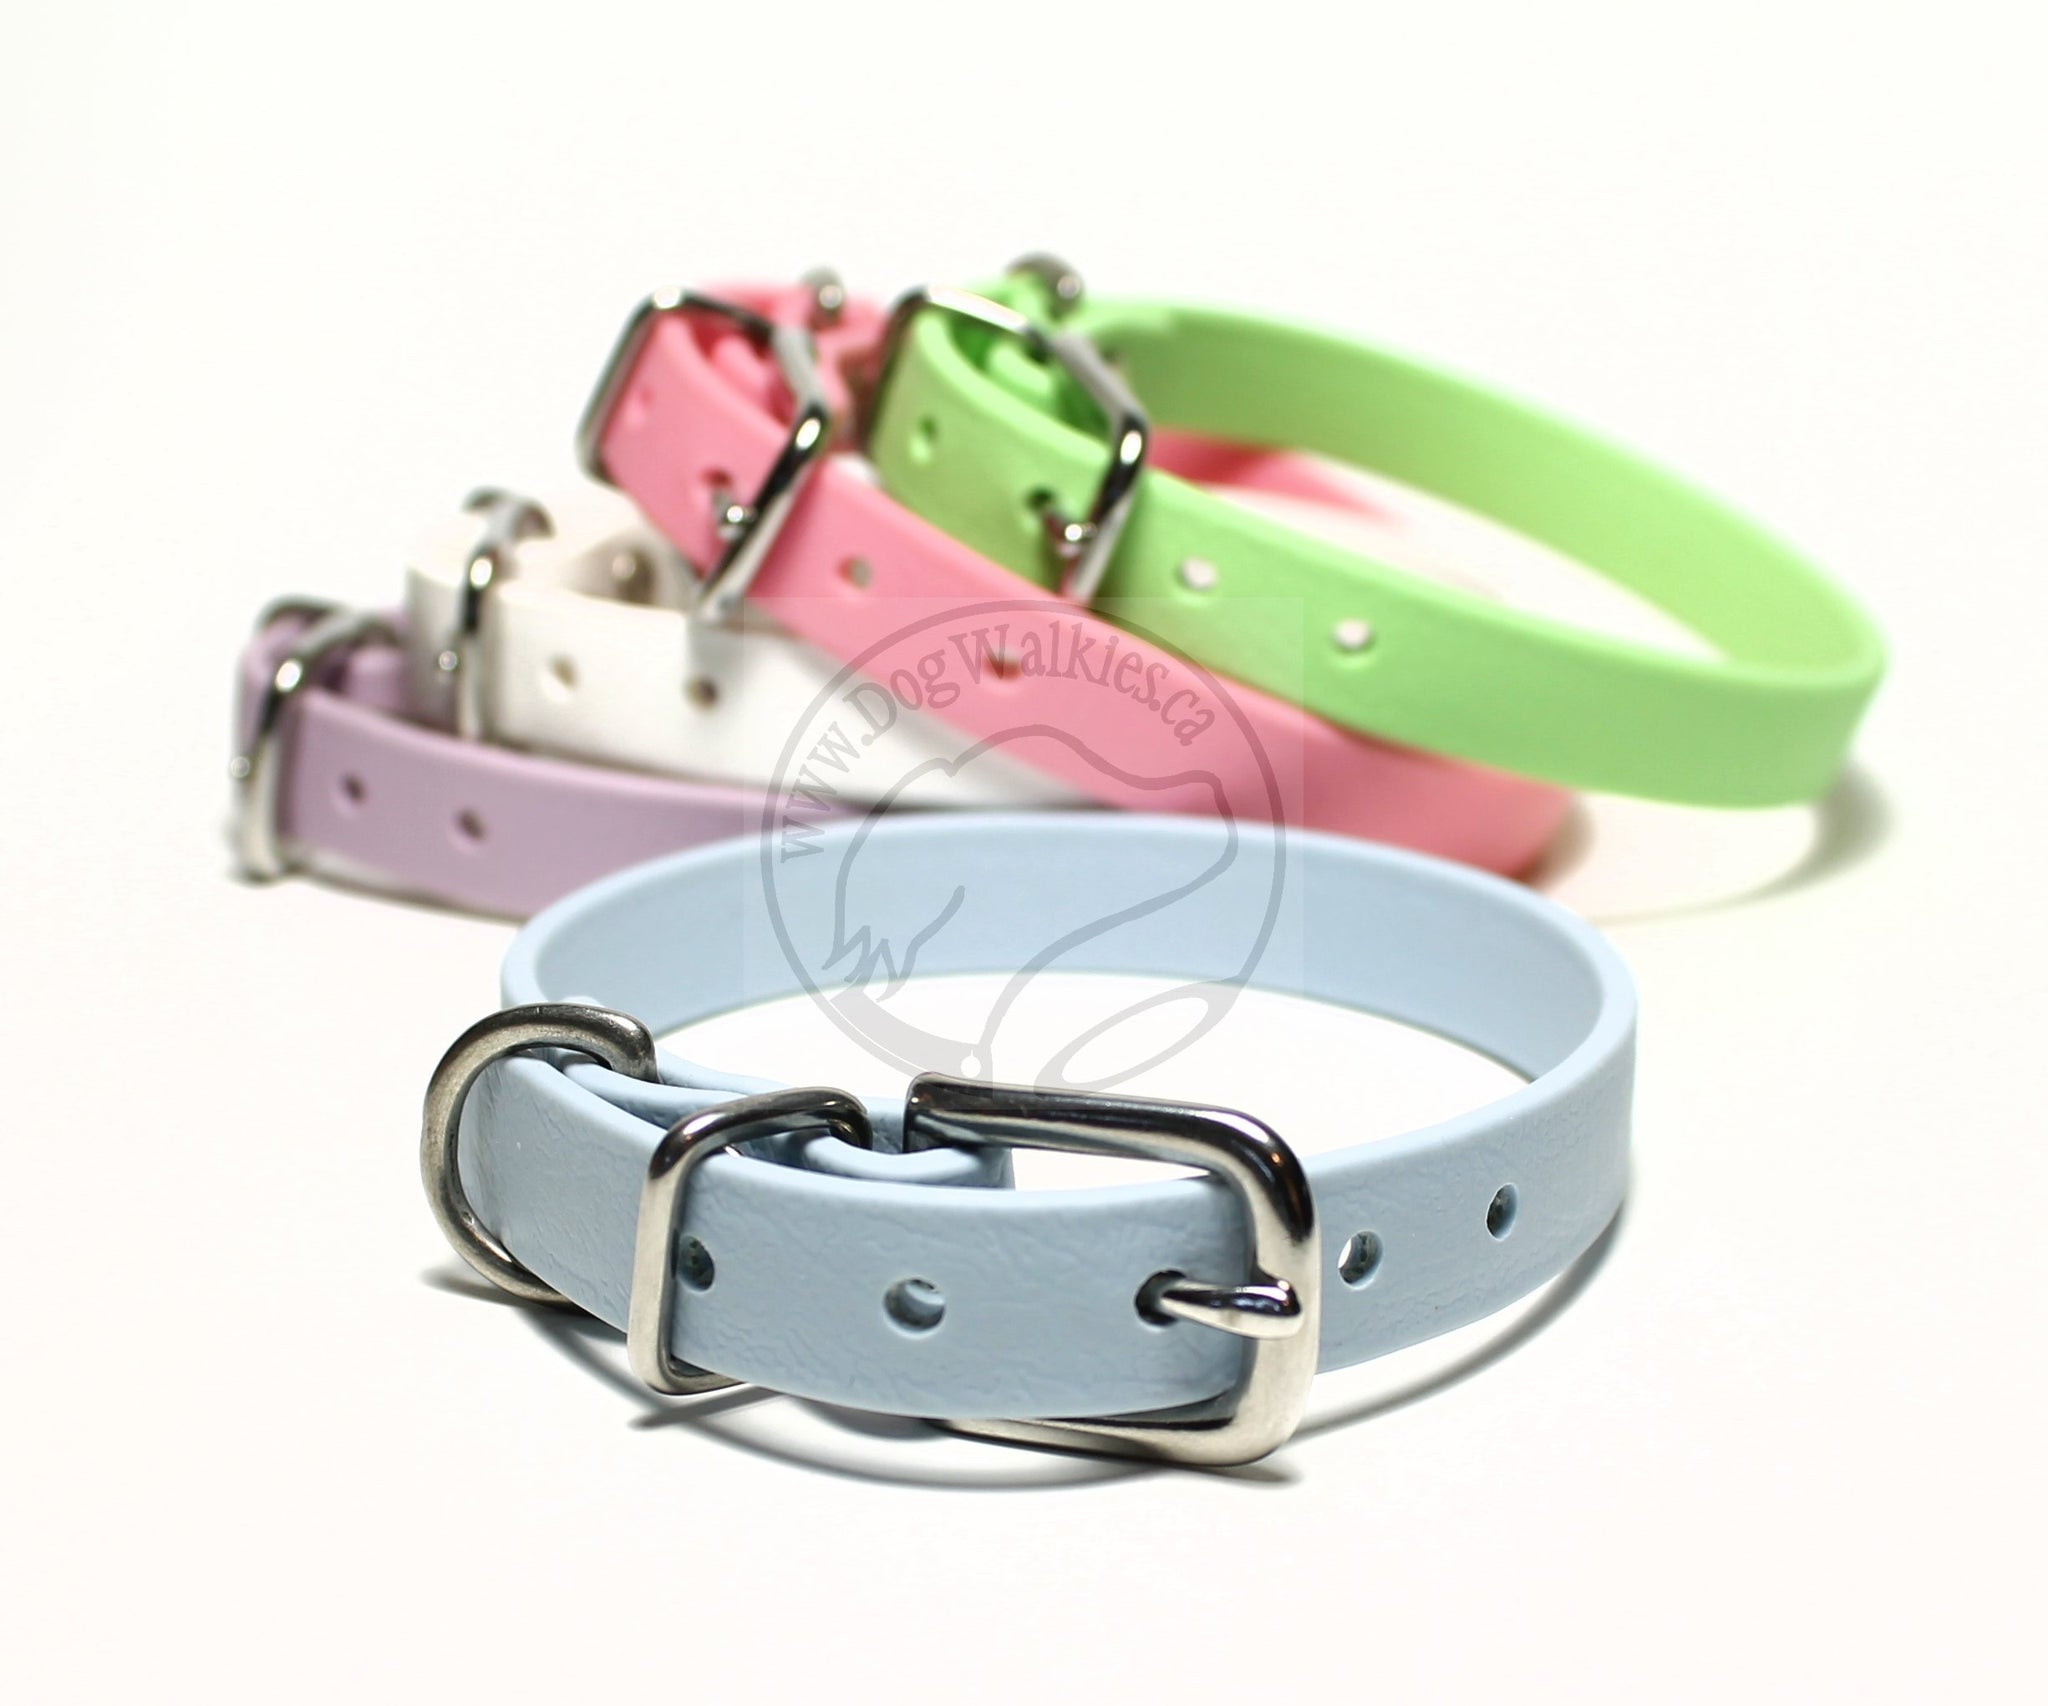 "Pastel Blue Biothane Small Dog Collar - 1/2"" (12mm) wide"